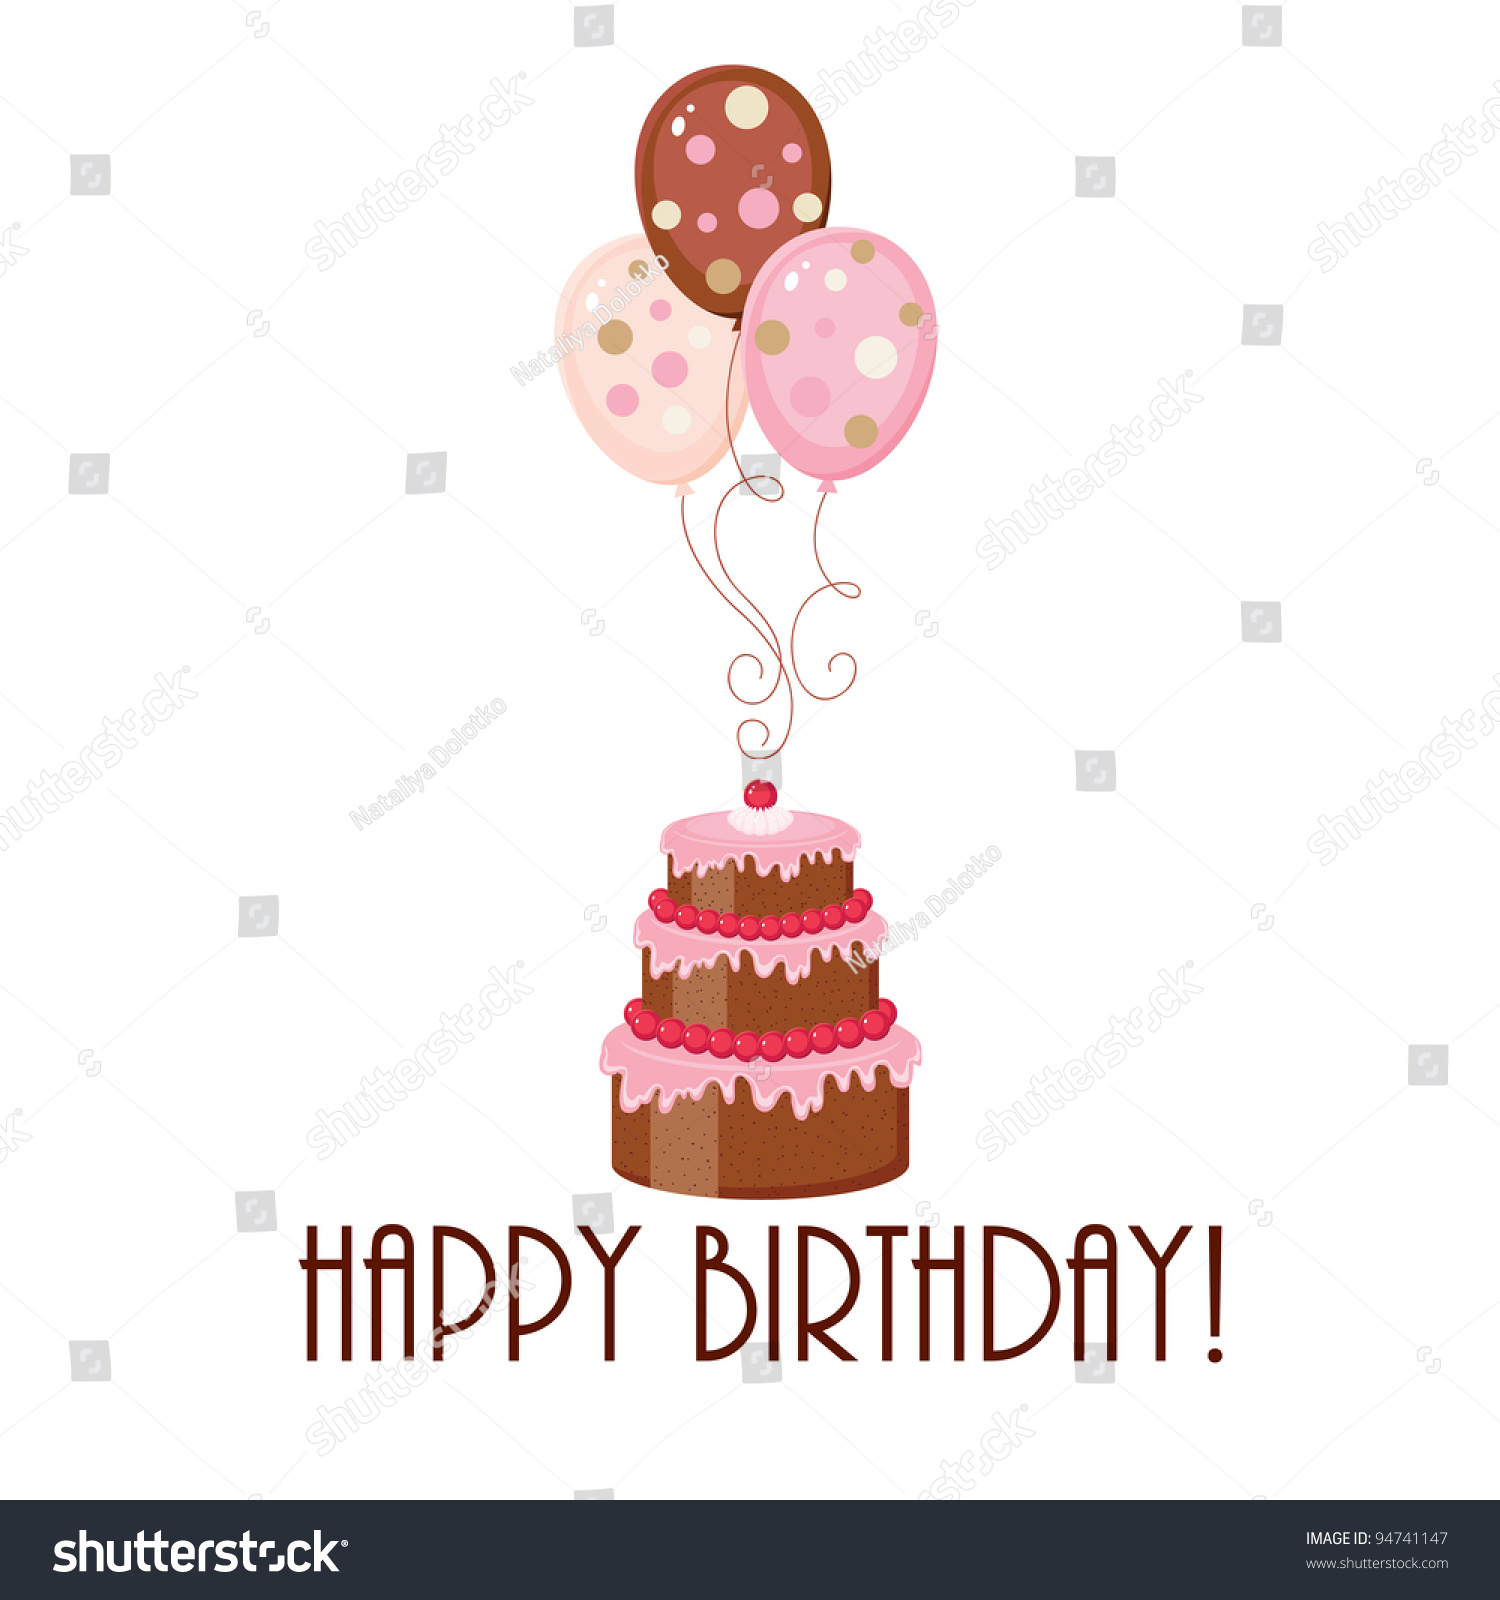 Birthday Cake And Balloons With Text Stock Vector